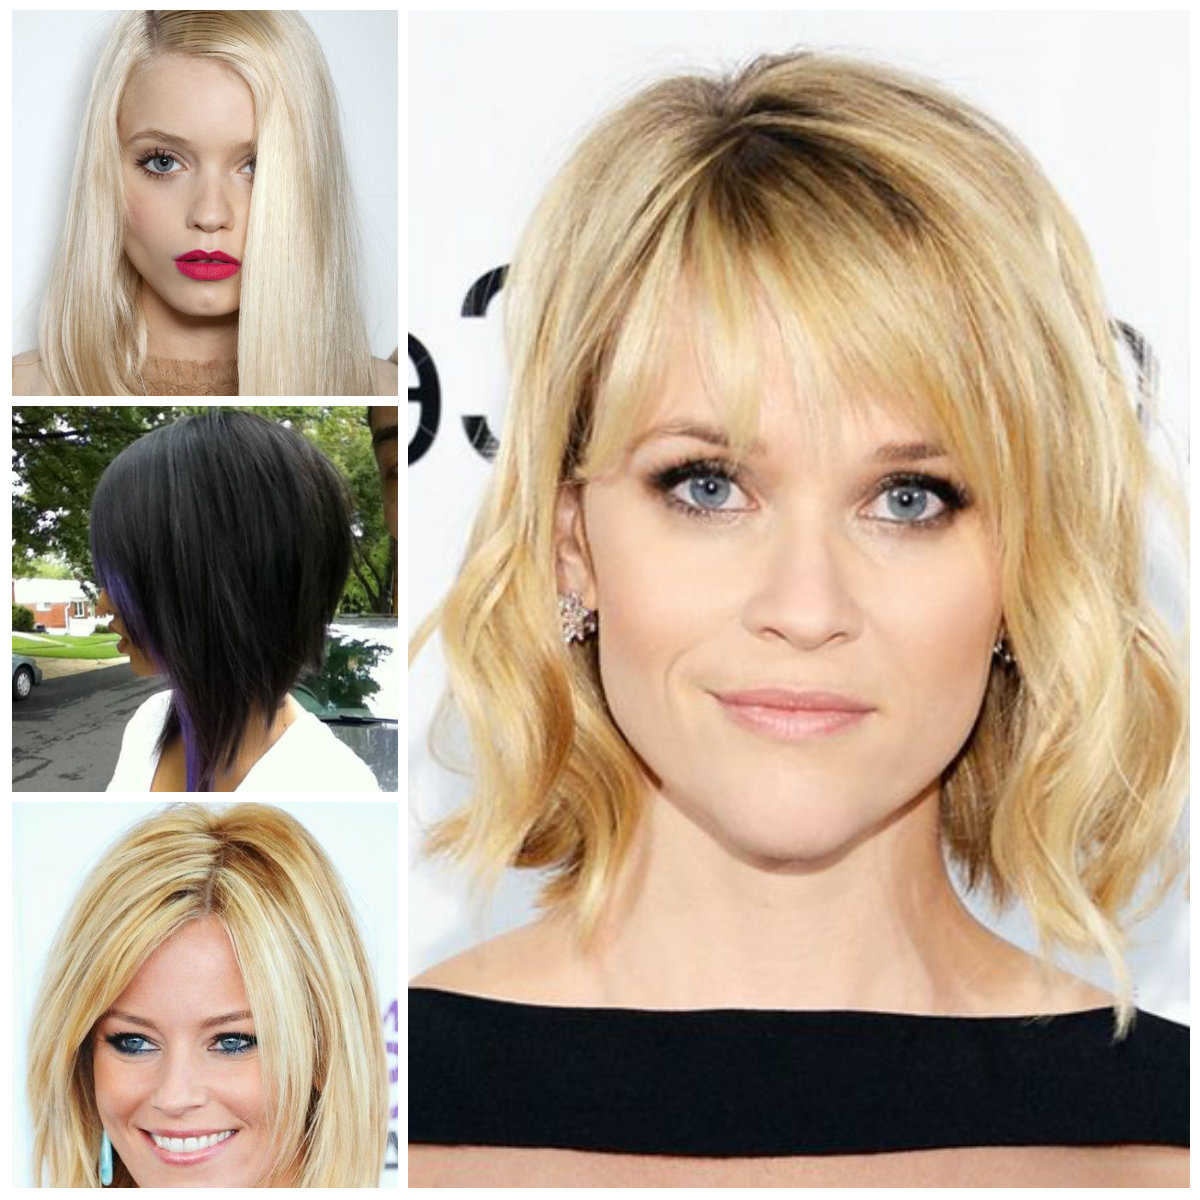 Most Current Medium Hairstyles For Spring Inside Haircuts, Hairstyles 2019 And Hair Colors For Short Long & Medium Hair (View 5 of 20)